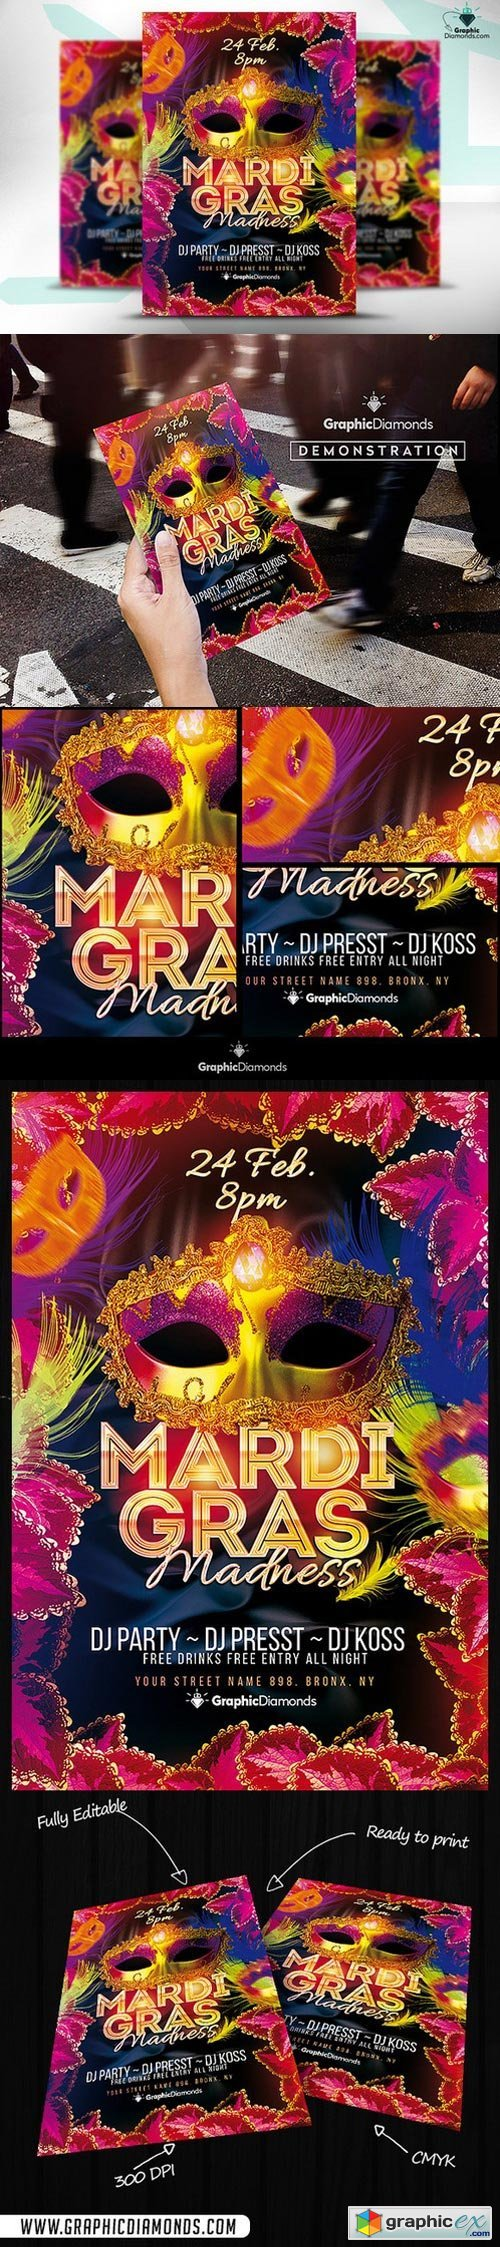 Mardi Gras Madness Flyer